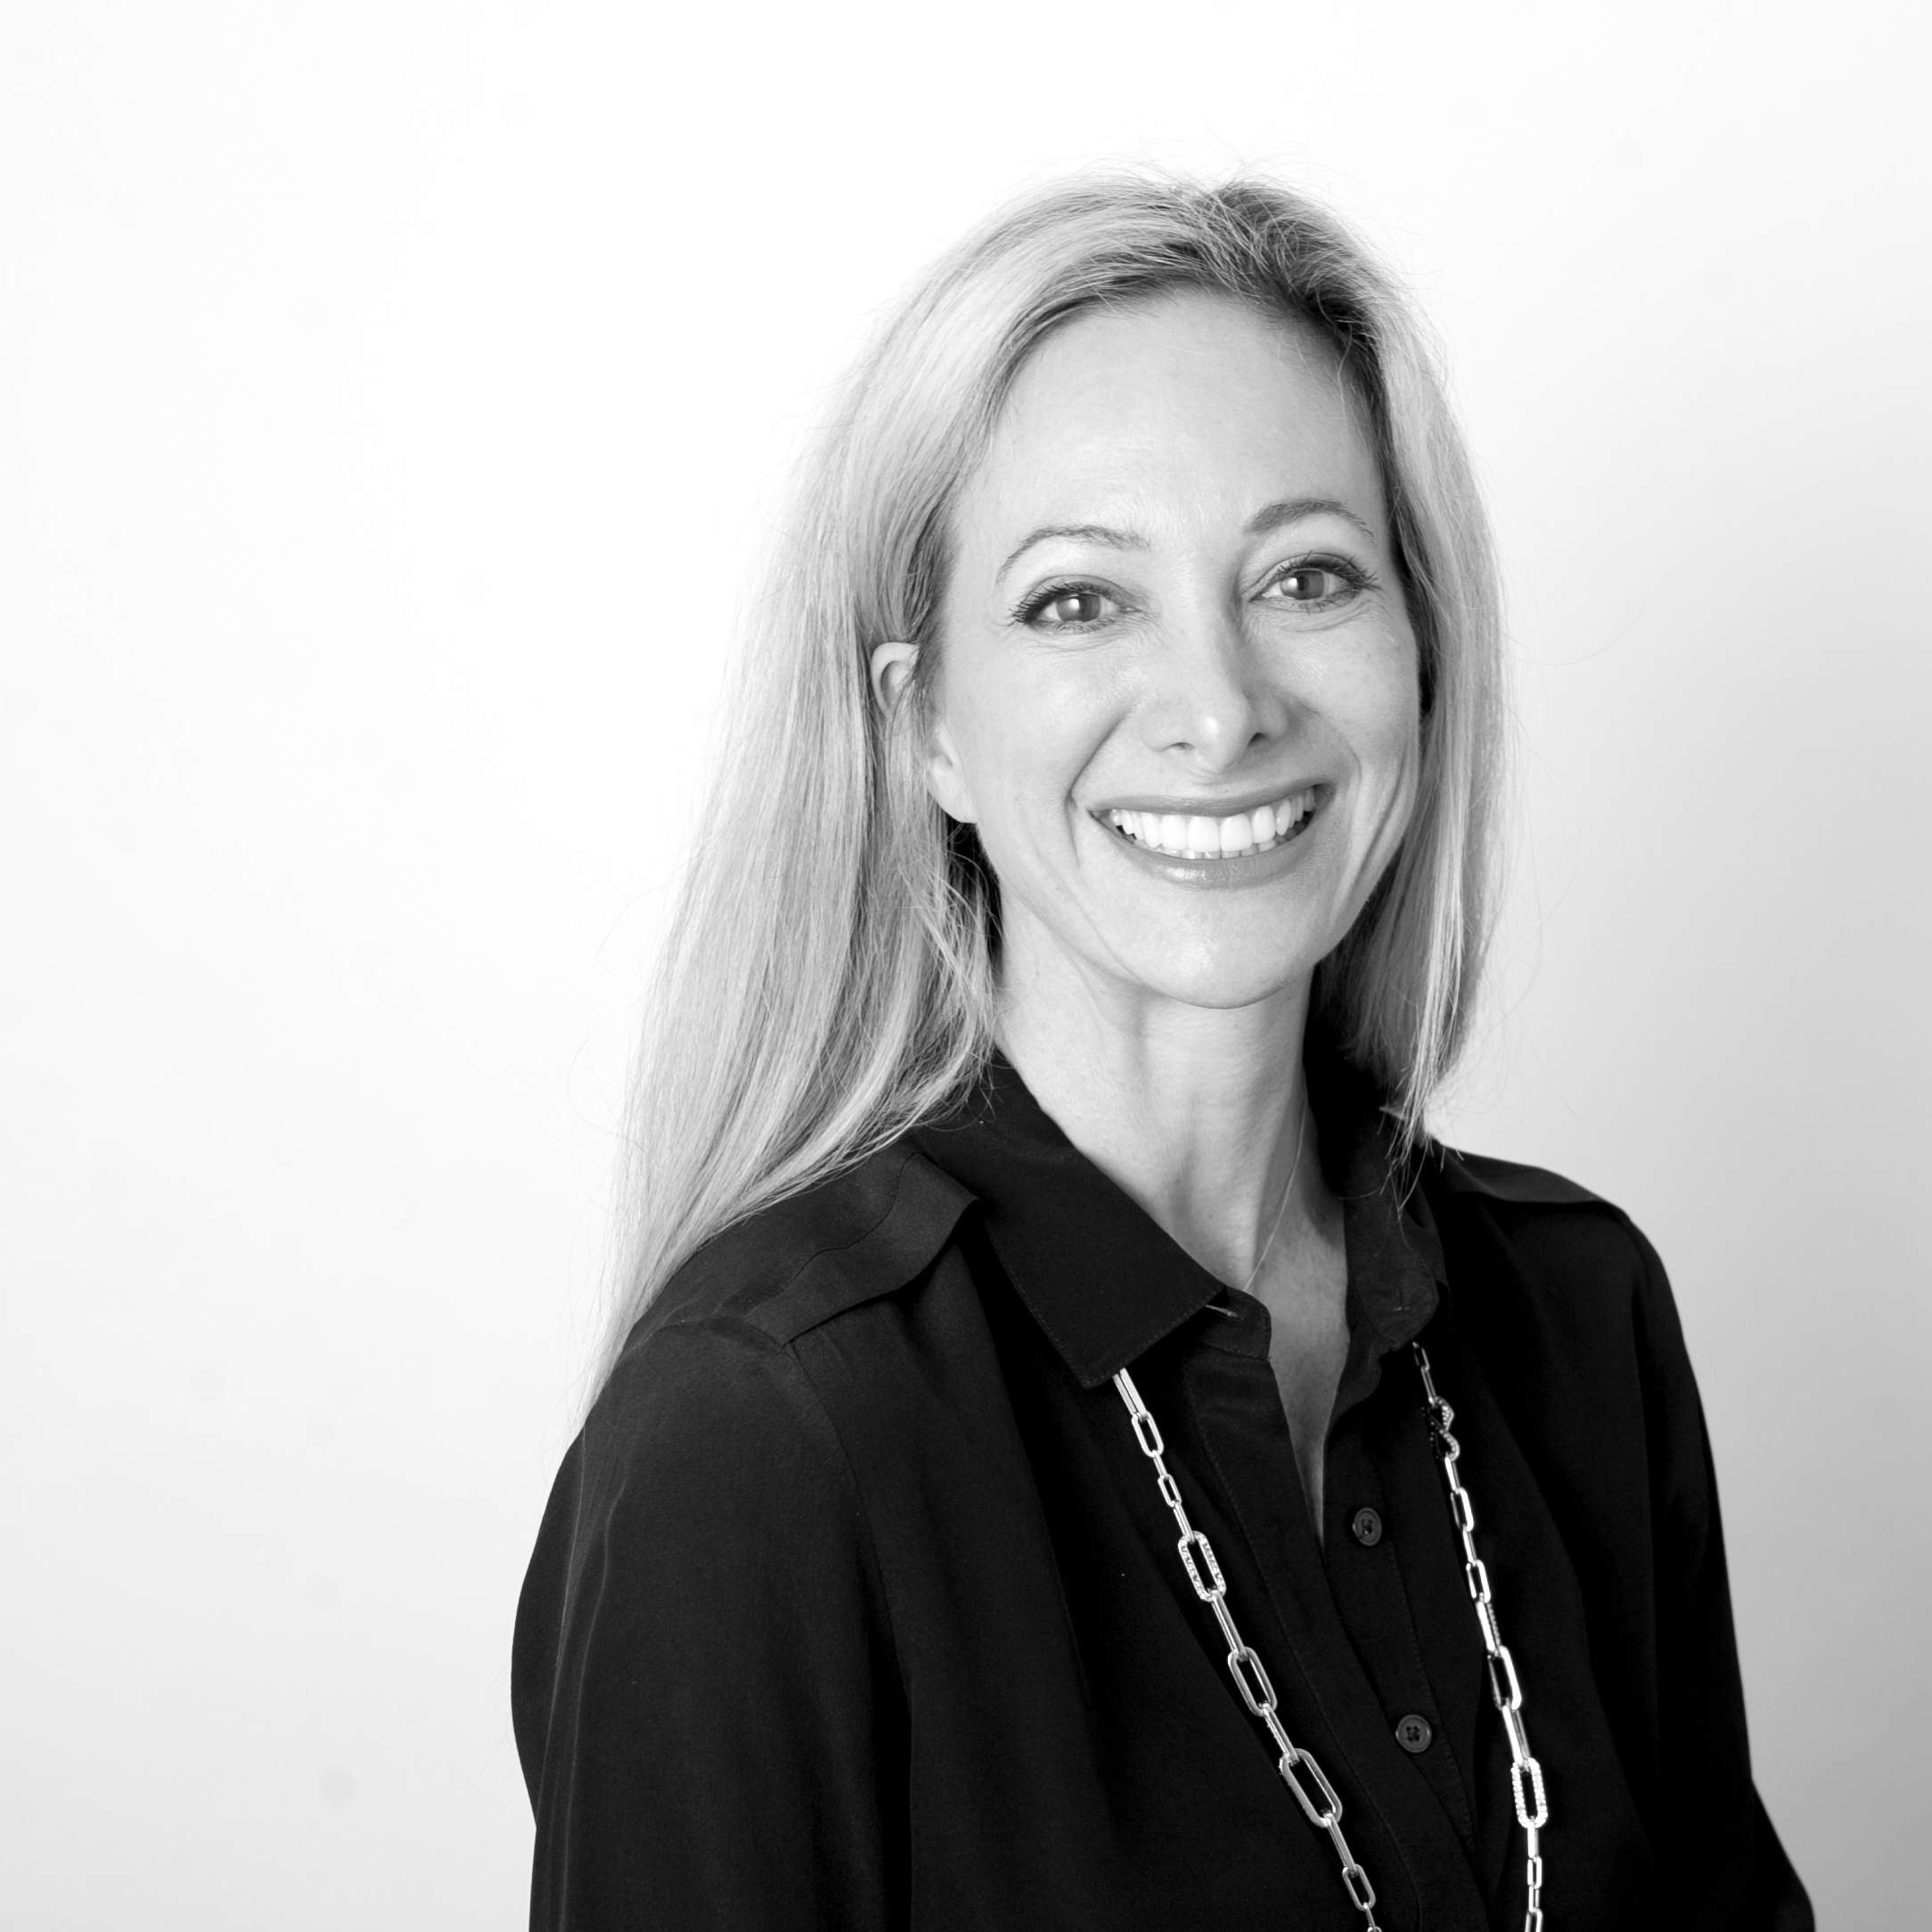 Janine Daniels - Principal Consultant and Head of Executive Coaching, Bendelta